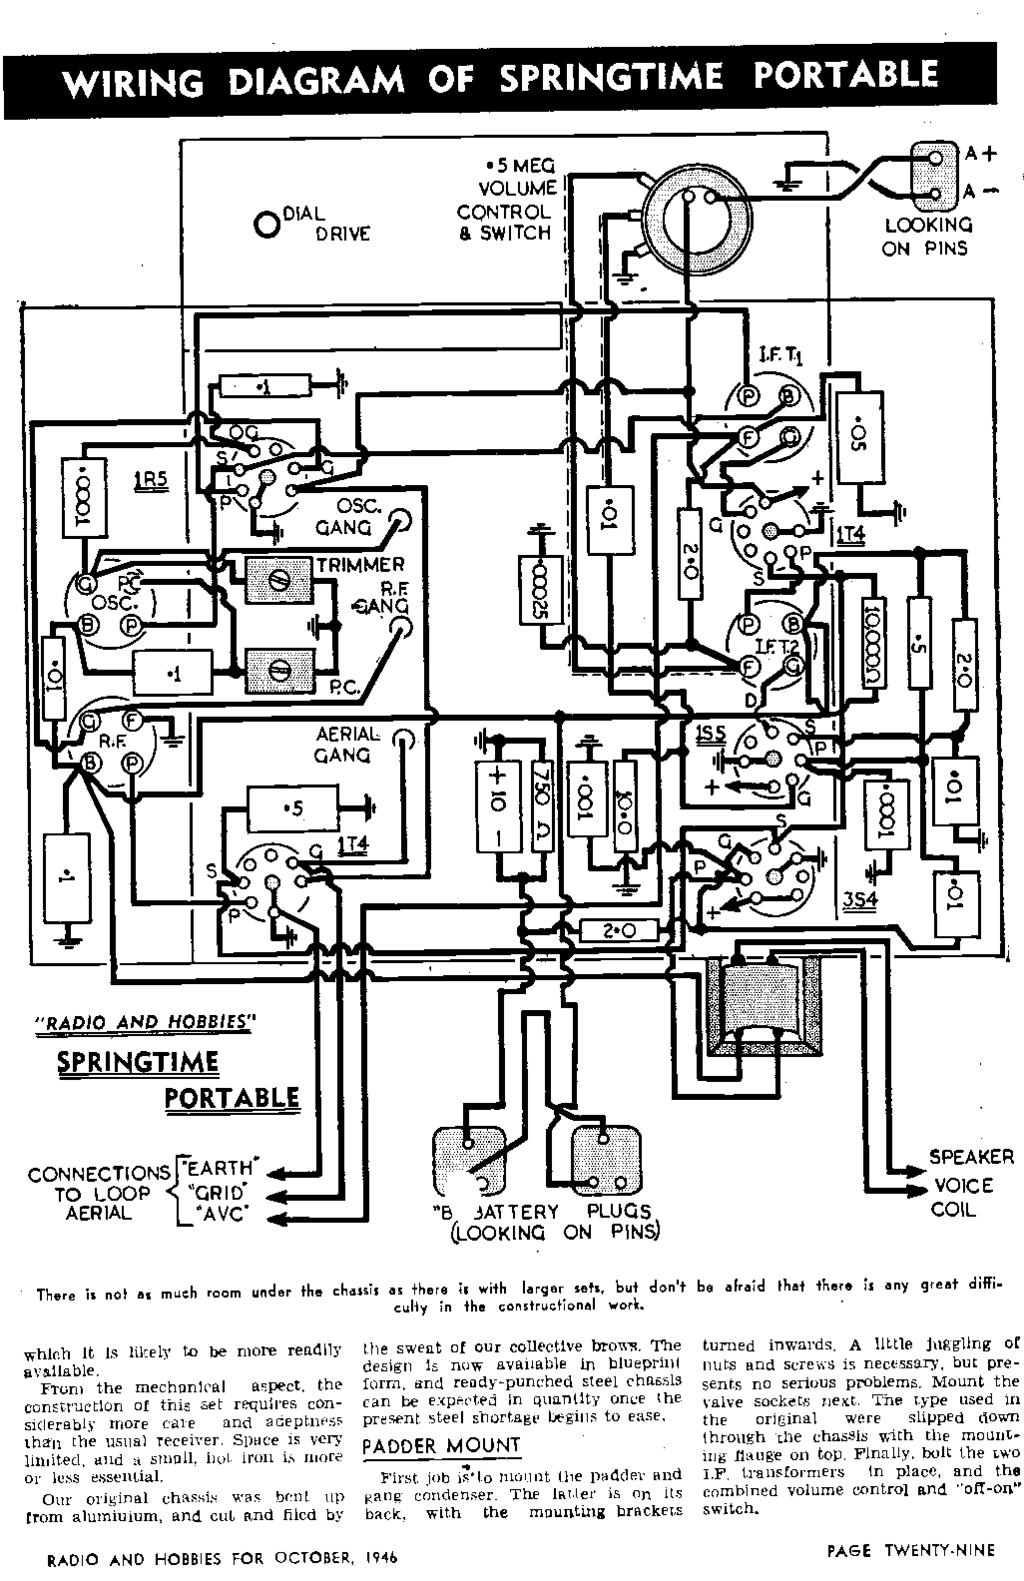 hight resolution of transformers a a s meg volume control switch looking on pins a a